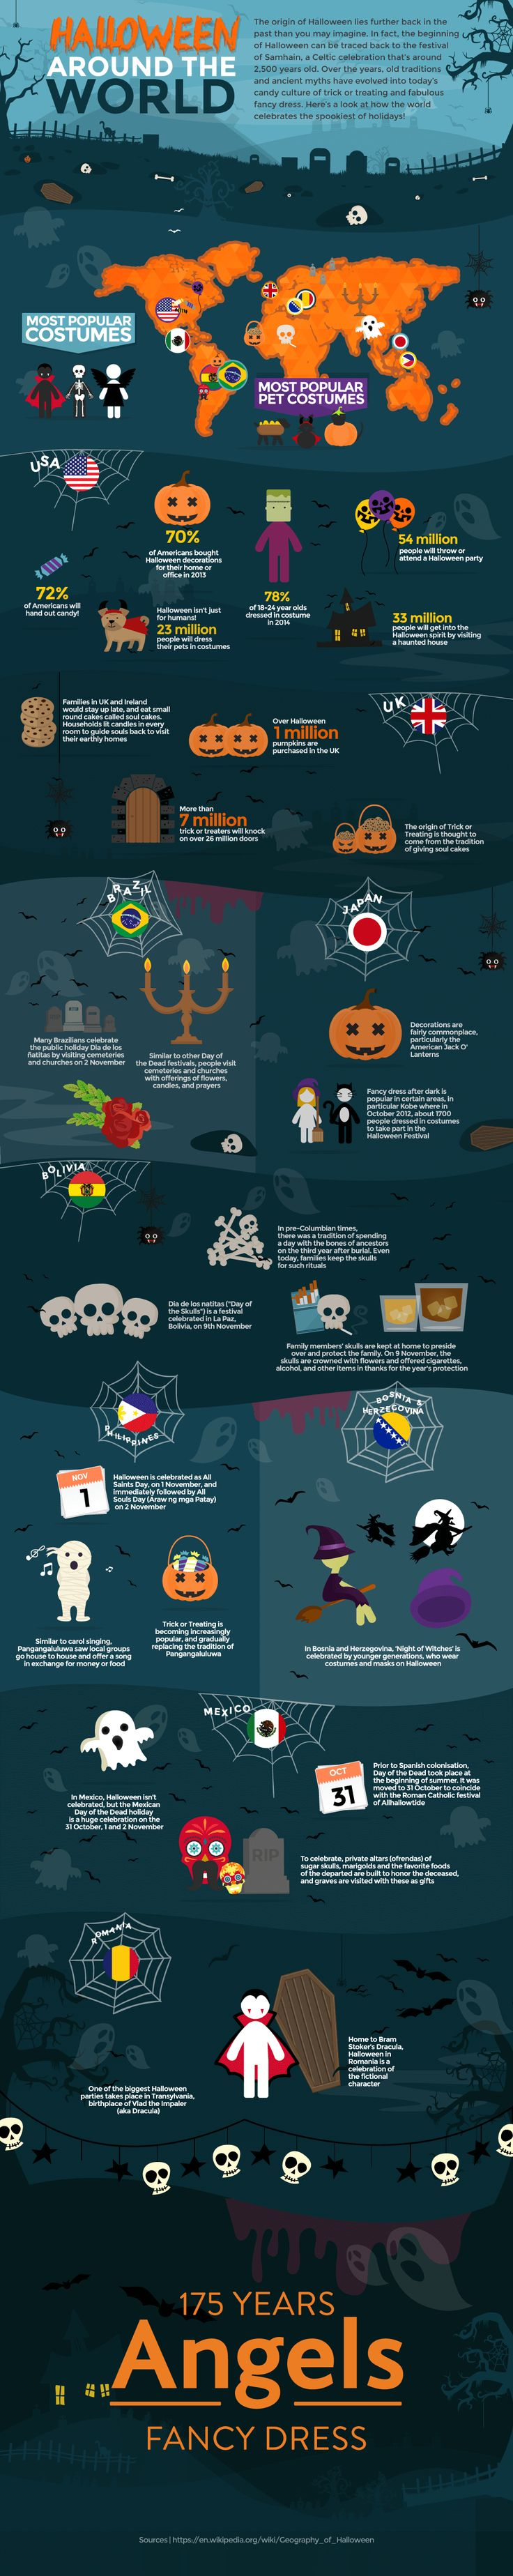 halloween around the world - Where Does The Halloween Celebration Come From